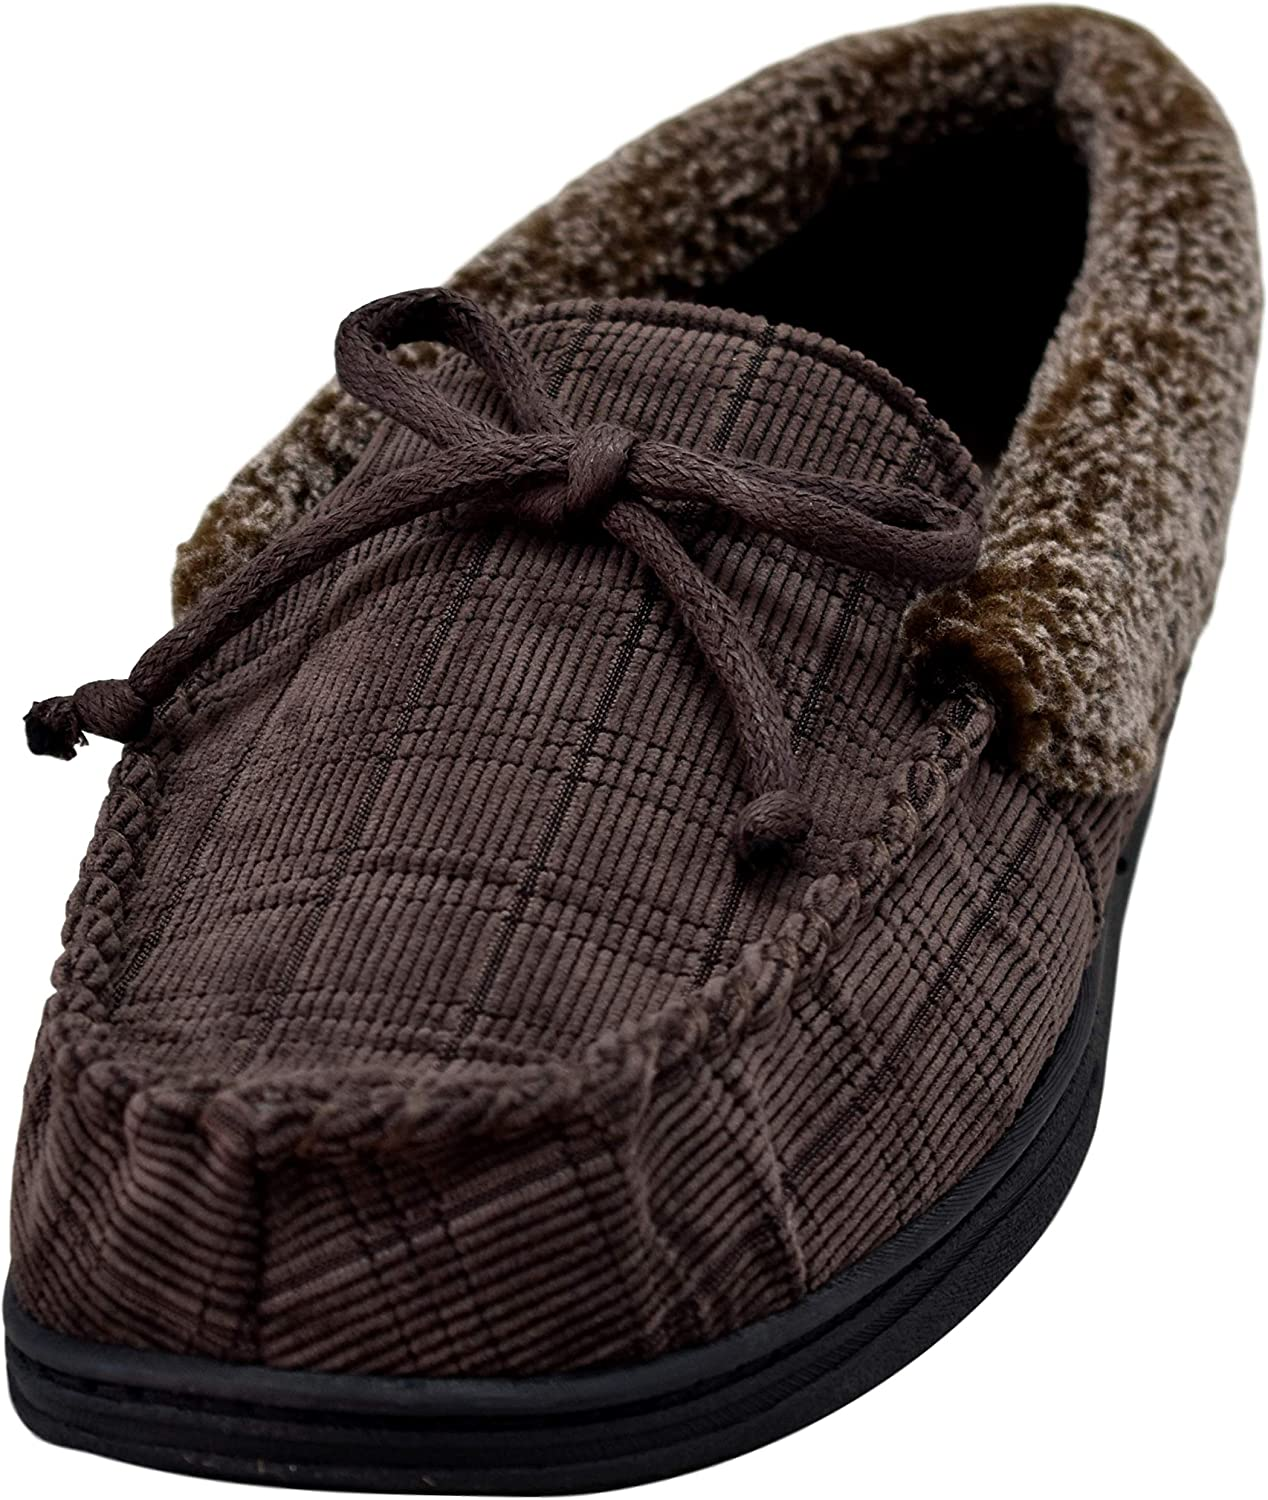 Isotoner - Men's Boxed Corded Moccasin Slippers with Berber Casing and Memory Foam